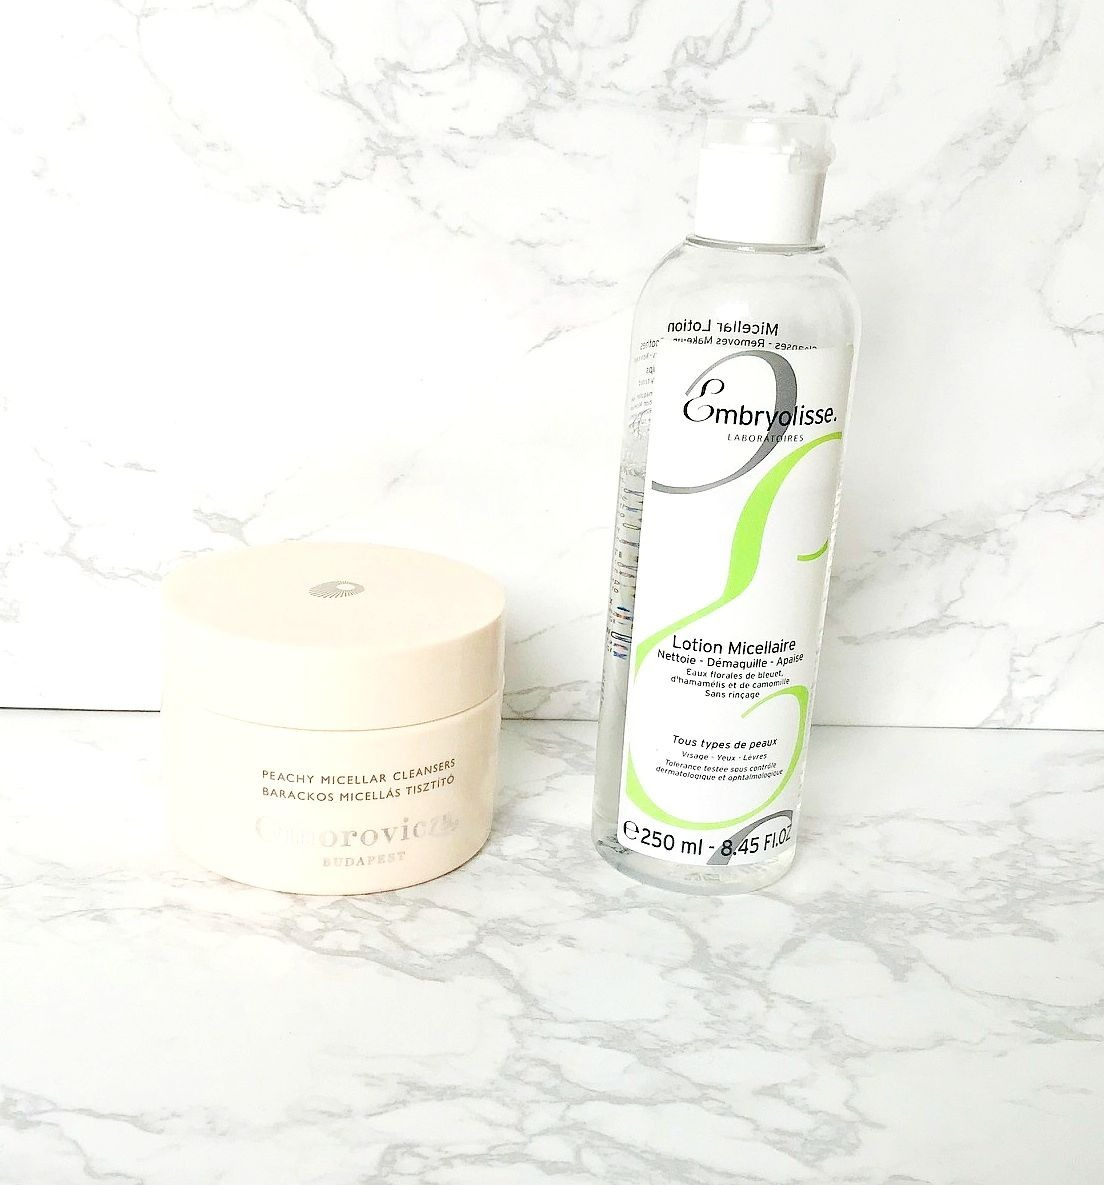 Embryolisse Micellar Cleanser, Omorovicza Peachy Micellar Cleanser